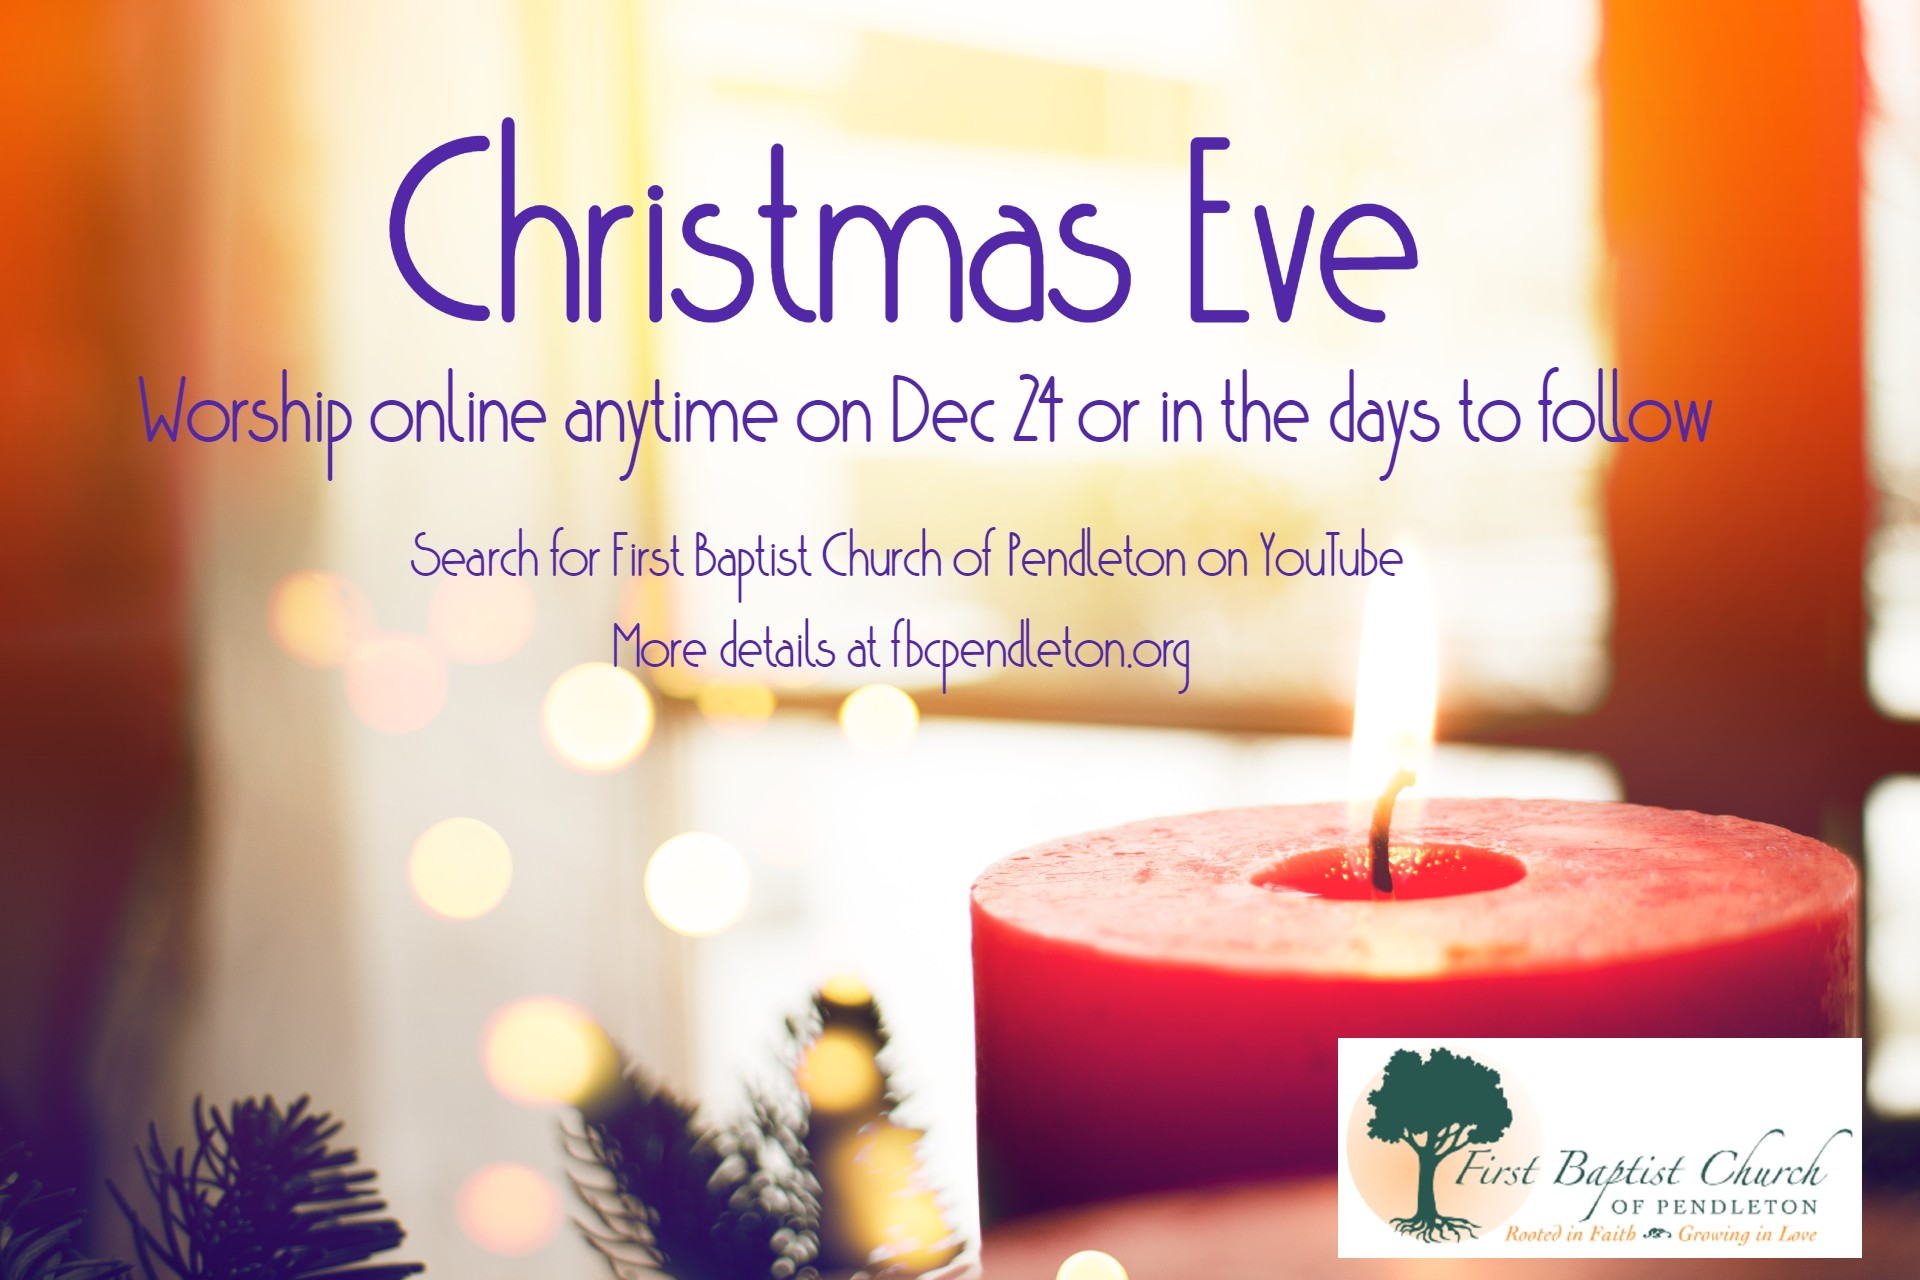 Christmas Eve service online